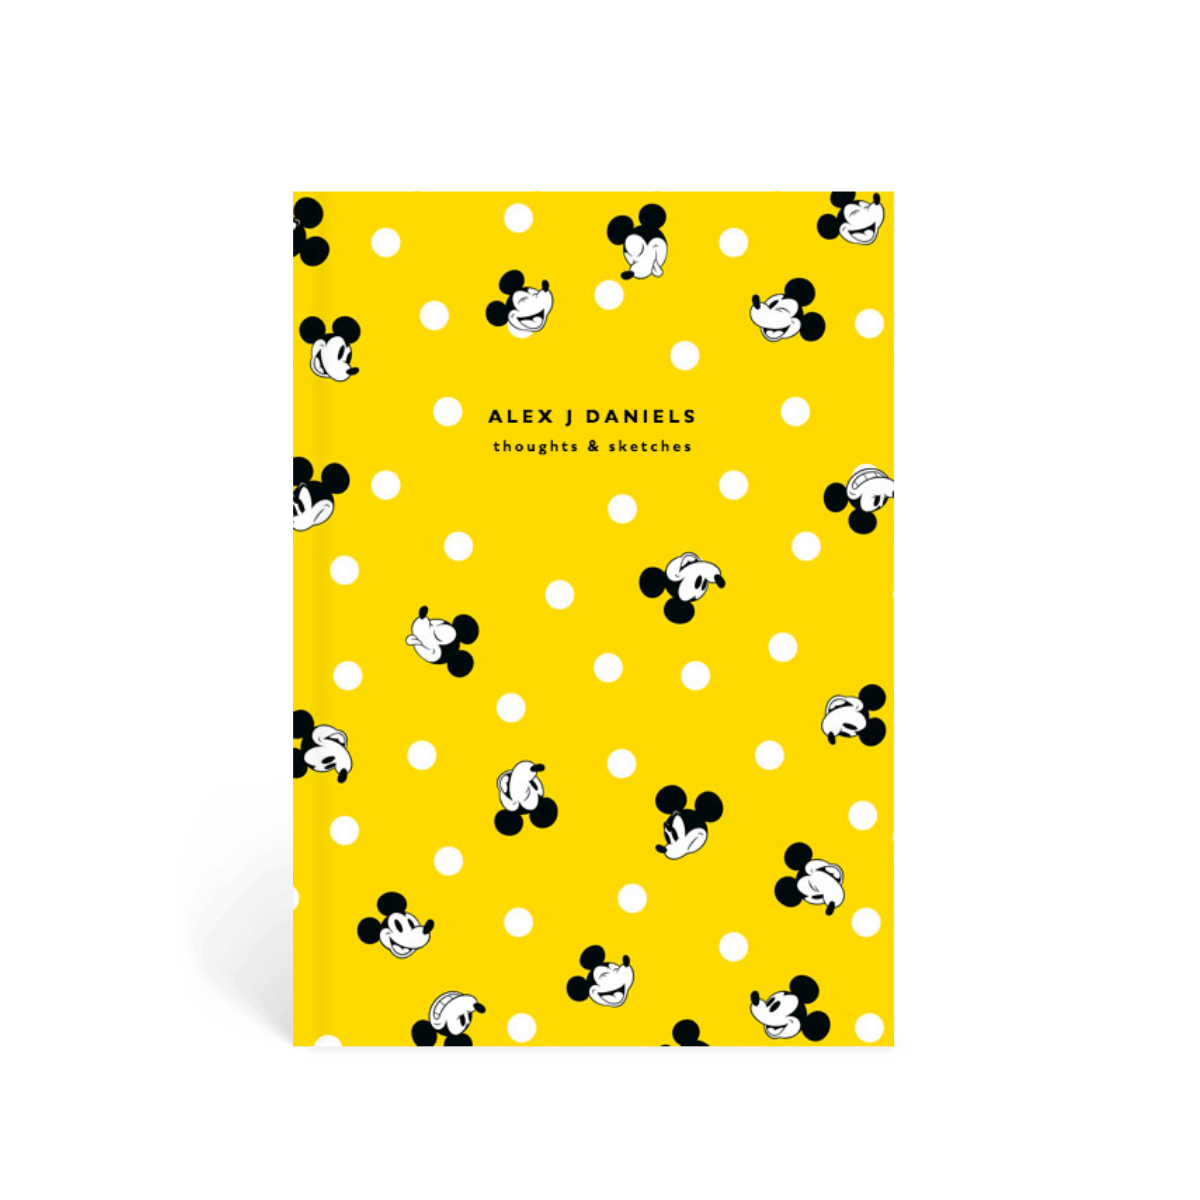 Https%3a%2f%2fwww.papier.com%2fproduct image%2f55858%2f25%2fmickey polka 13416 front 1542303888.png?ixlib=rb 1.1